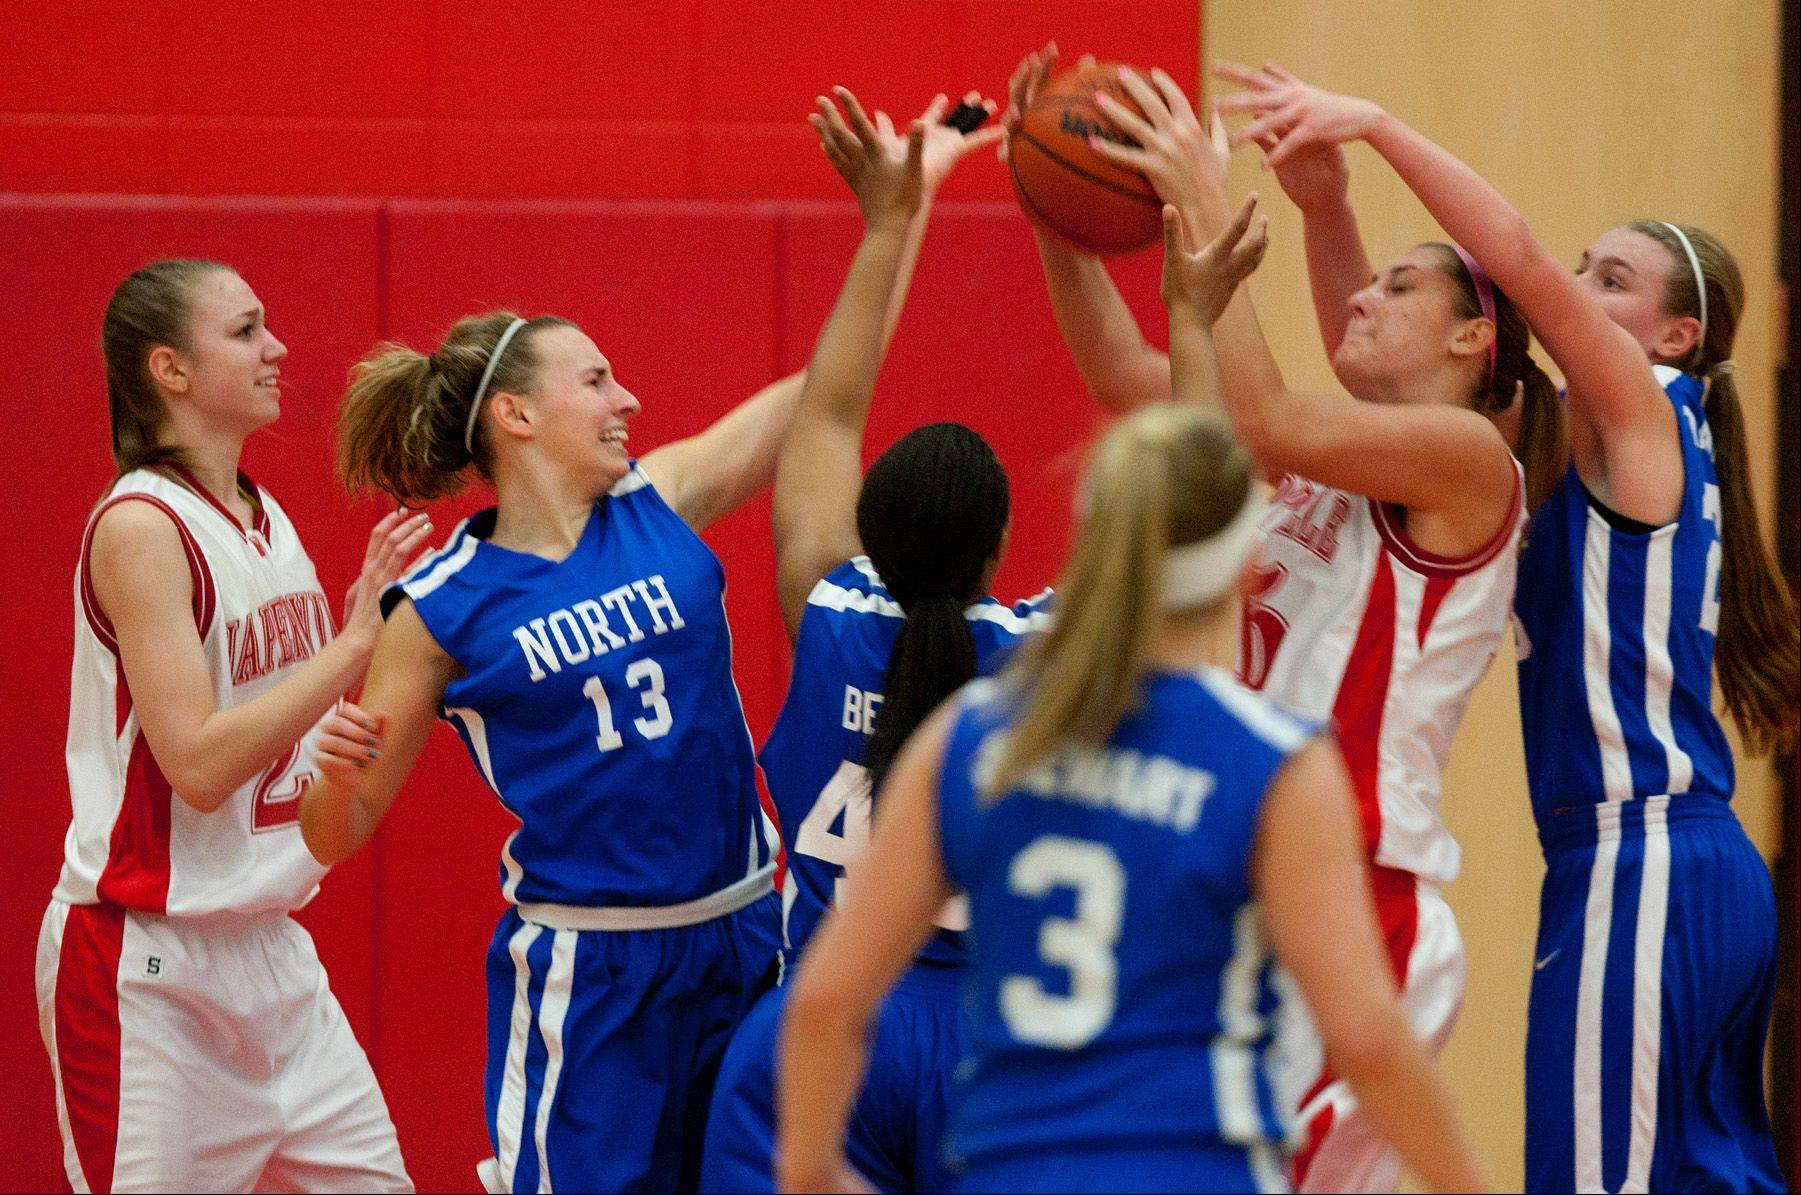 Images: Naperville Central vs. Wheaton North girls basketball